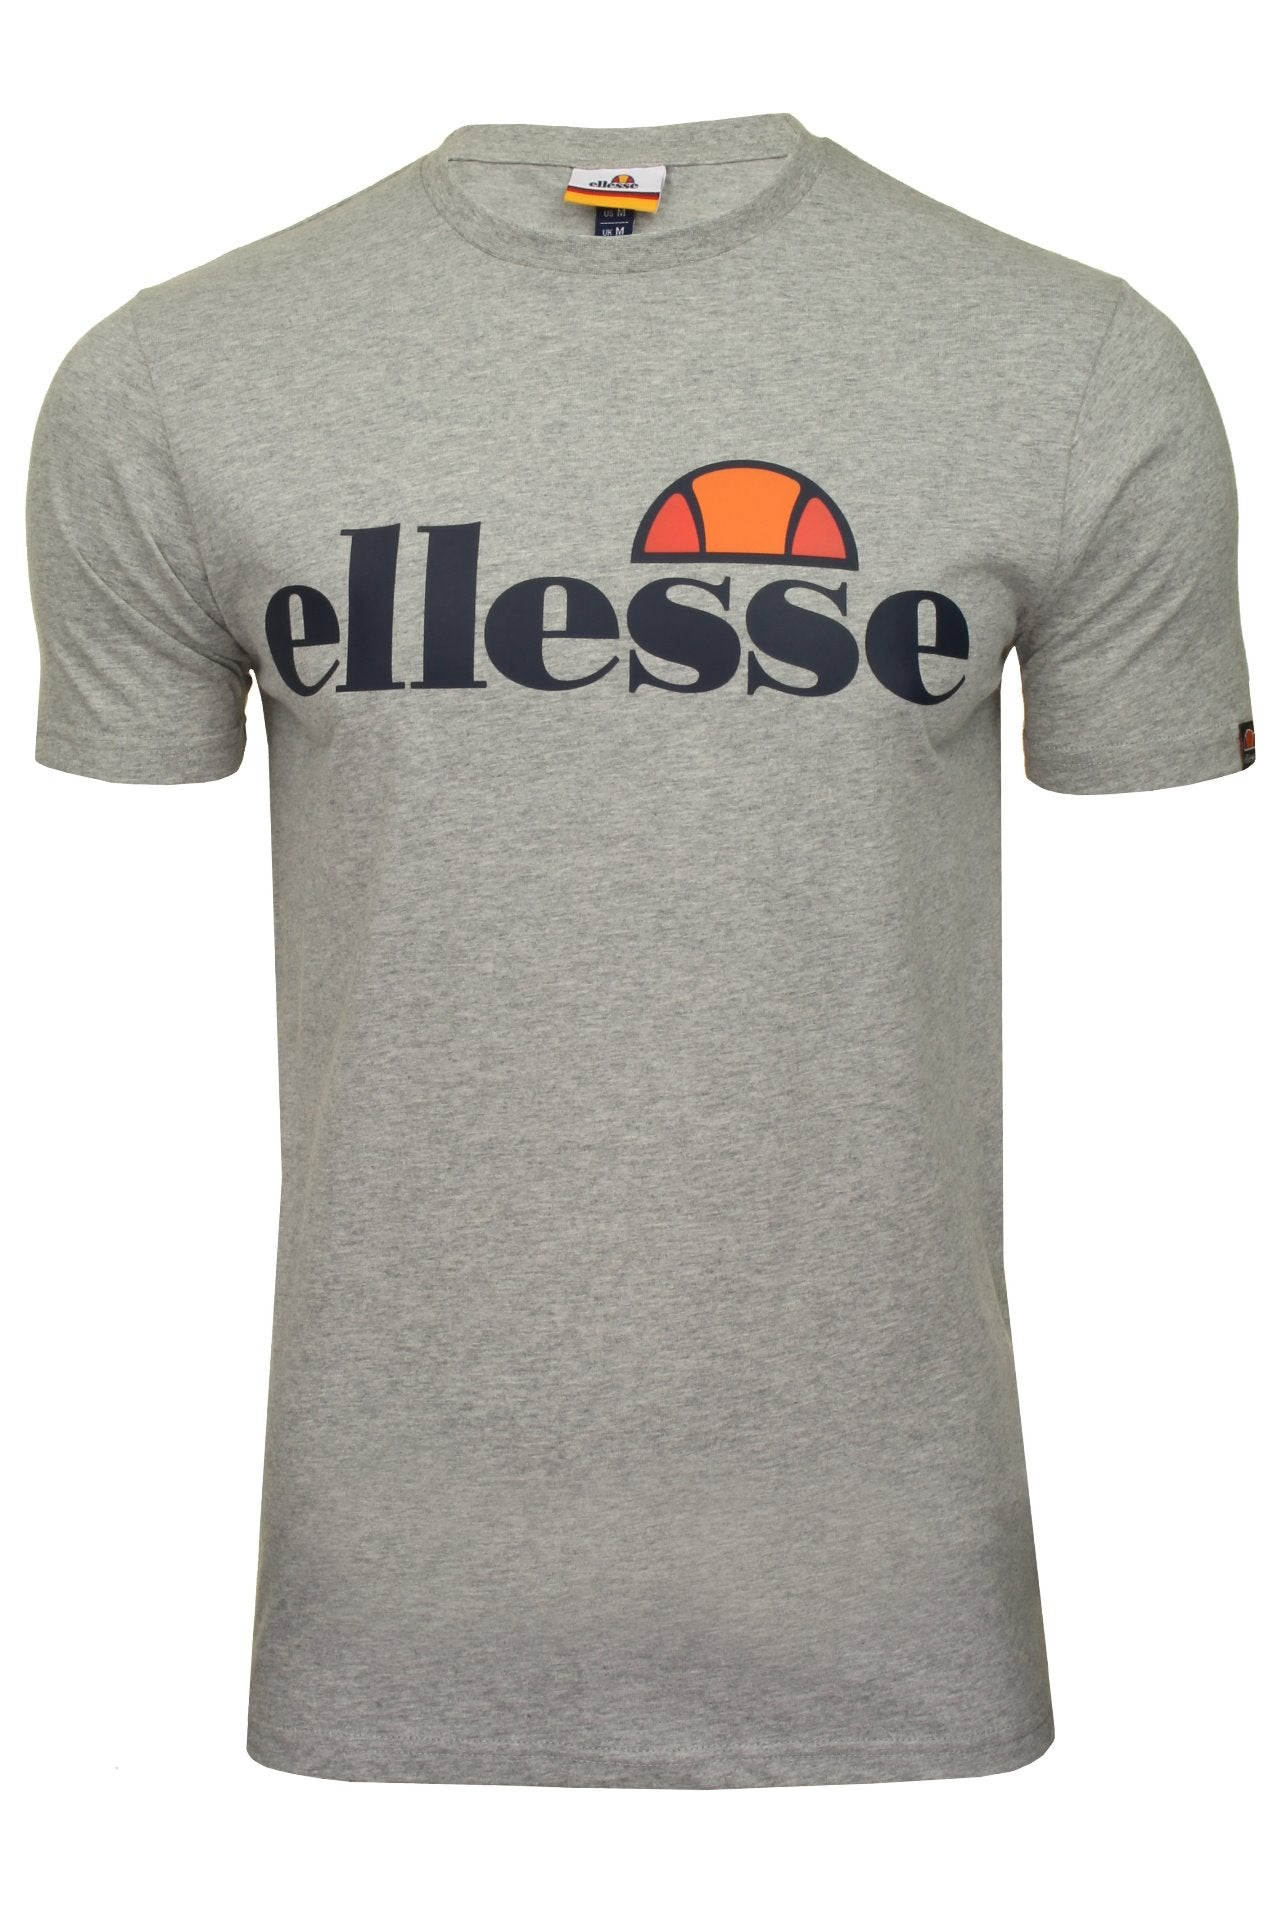 Ellesse Mens Logo Front Crew Neck T-Shirt 'PRADO' - Short Sleeved_01_Shc07405_Grey Marl